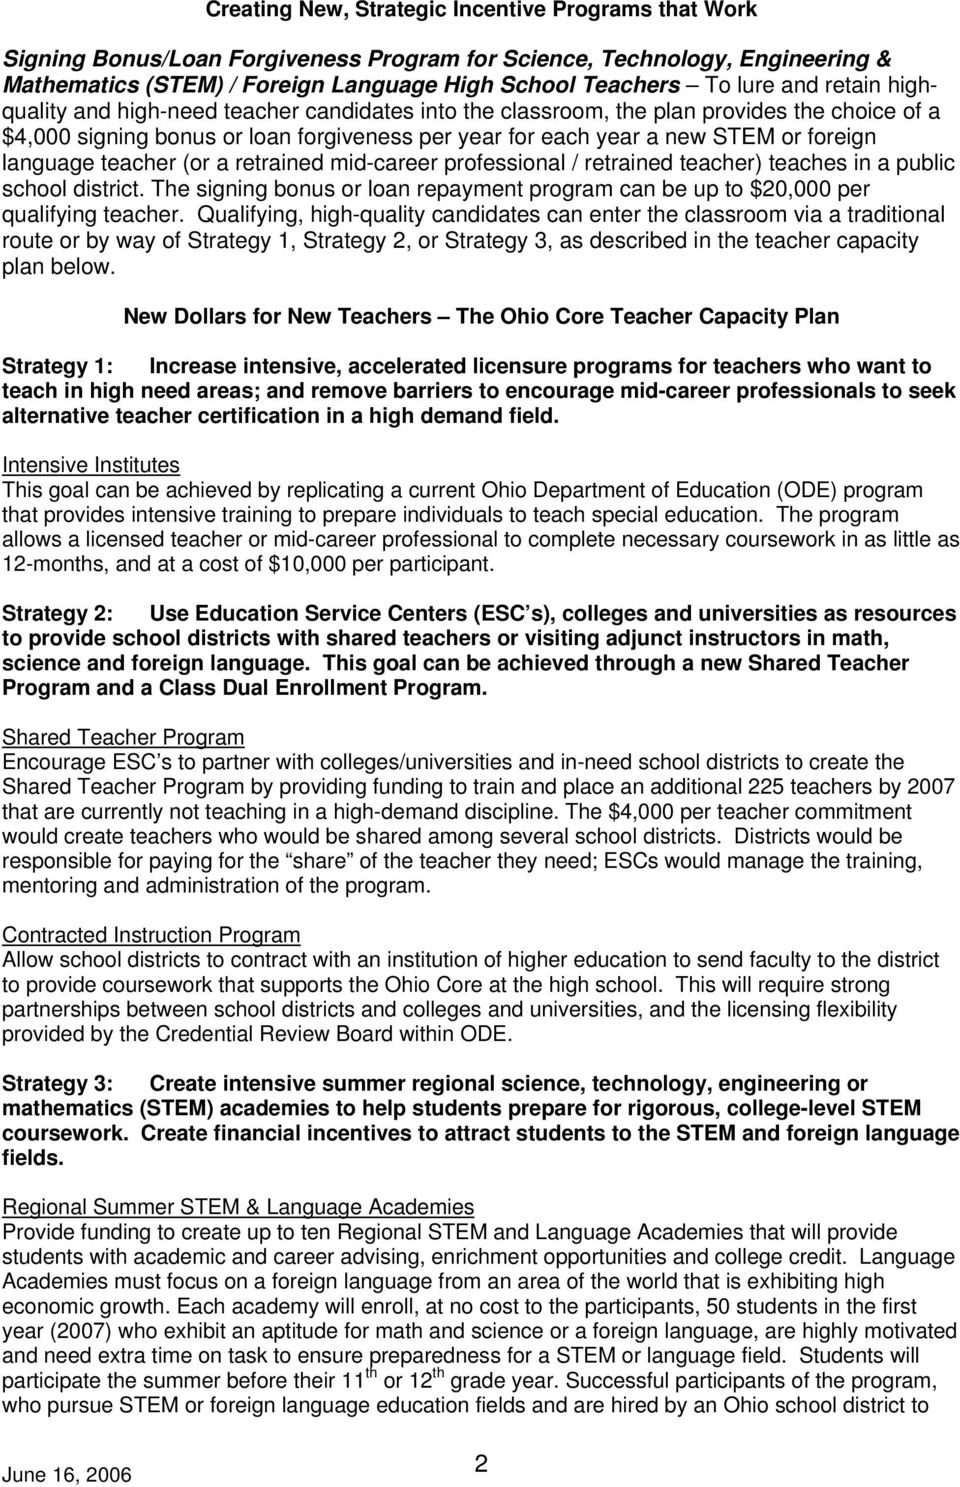 language teacher (or a retrained mid-career professional / retrained teacher) teaches in a public school district.